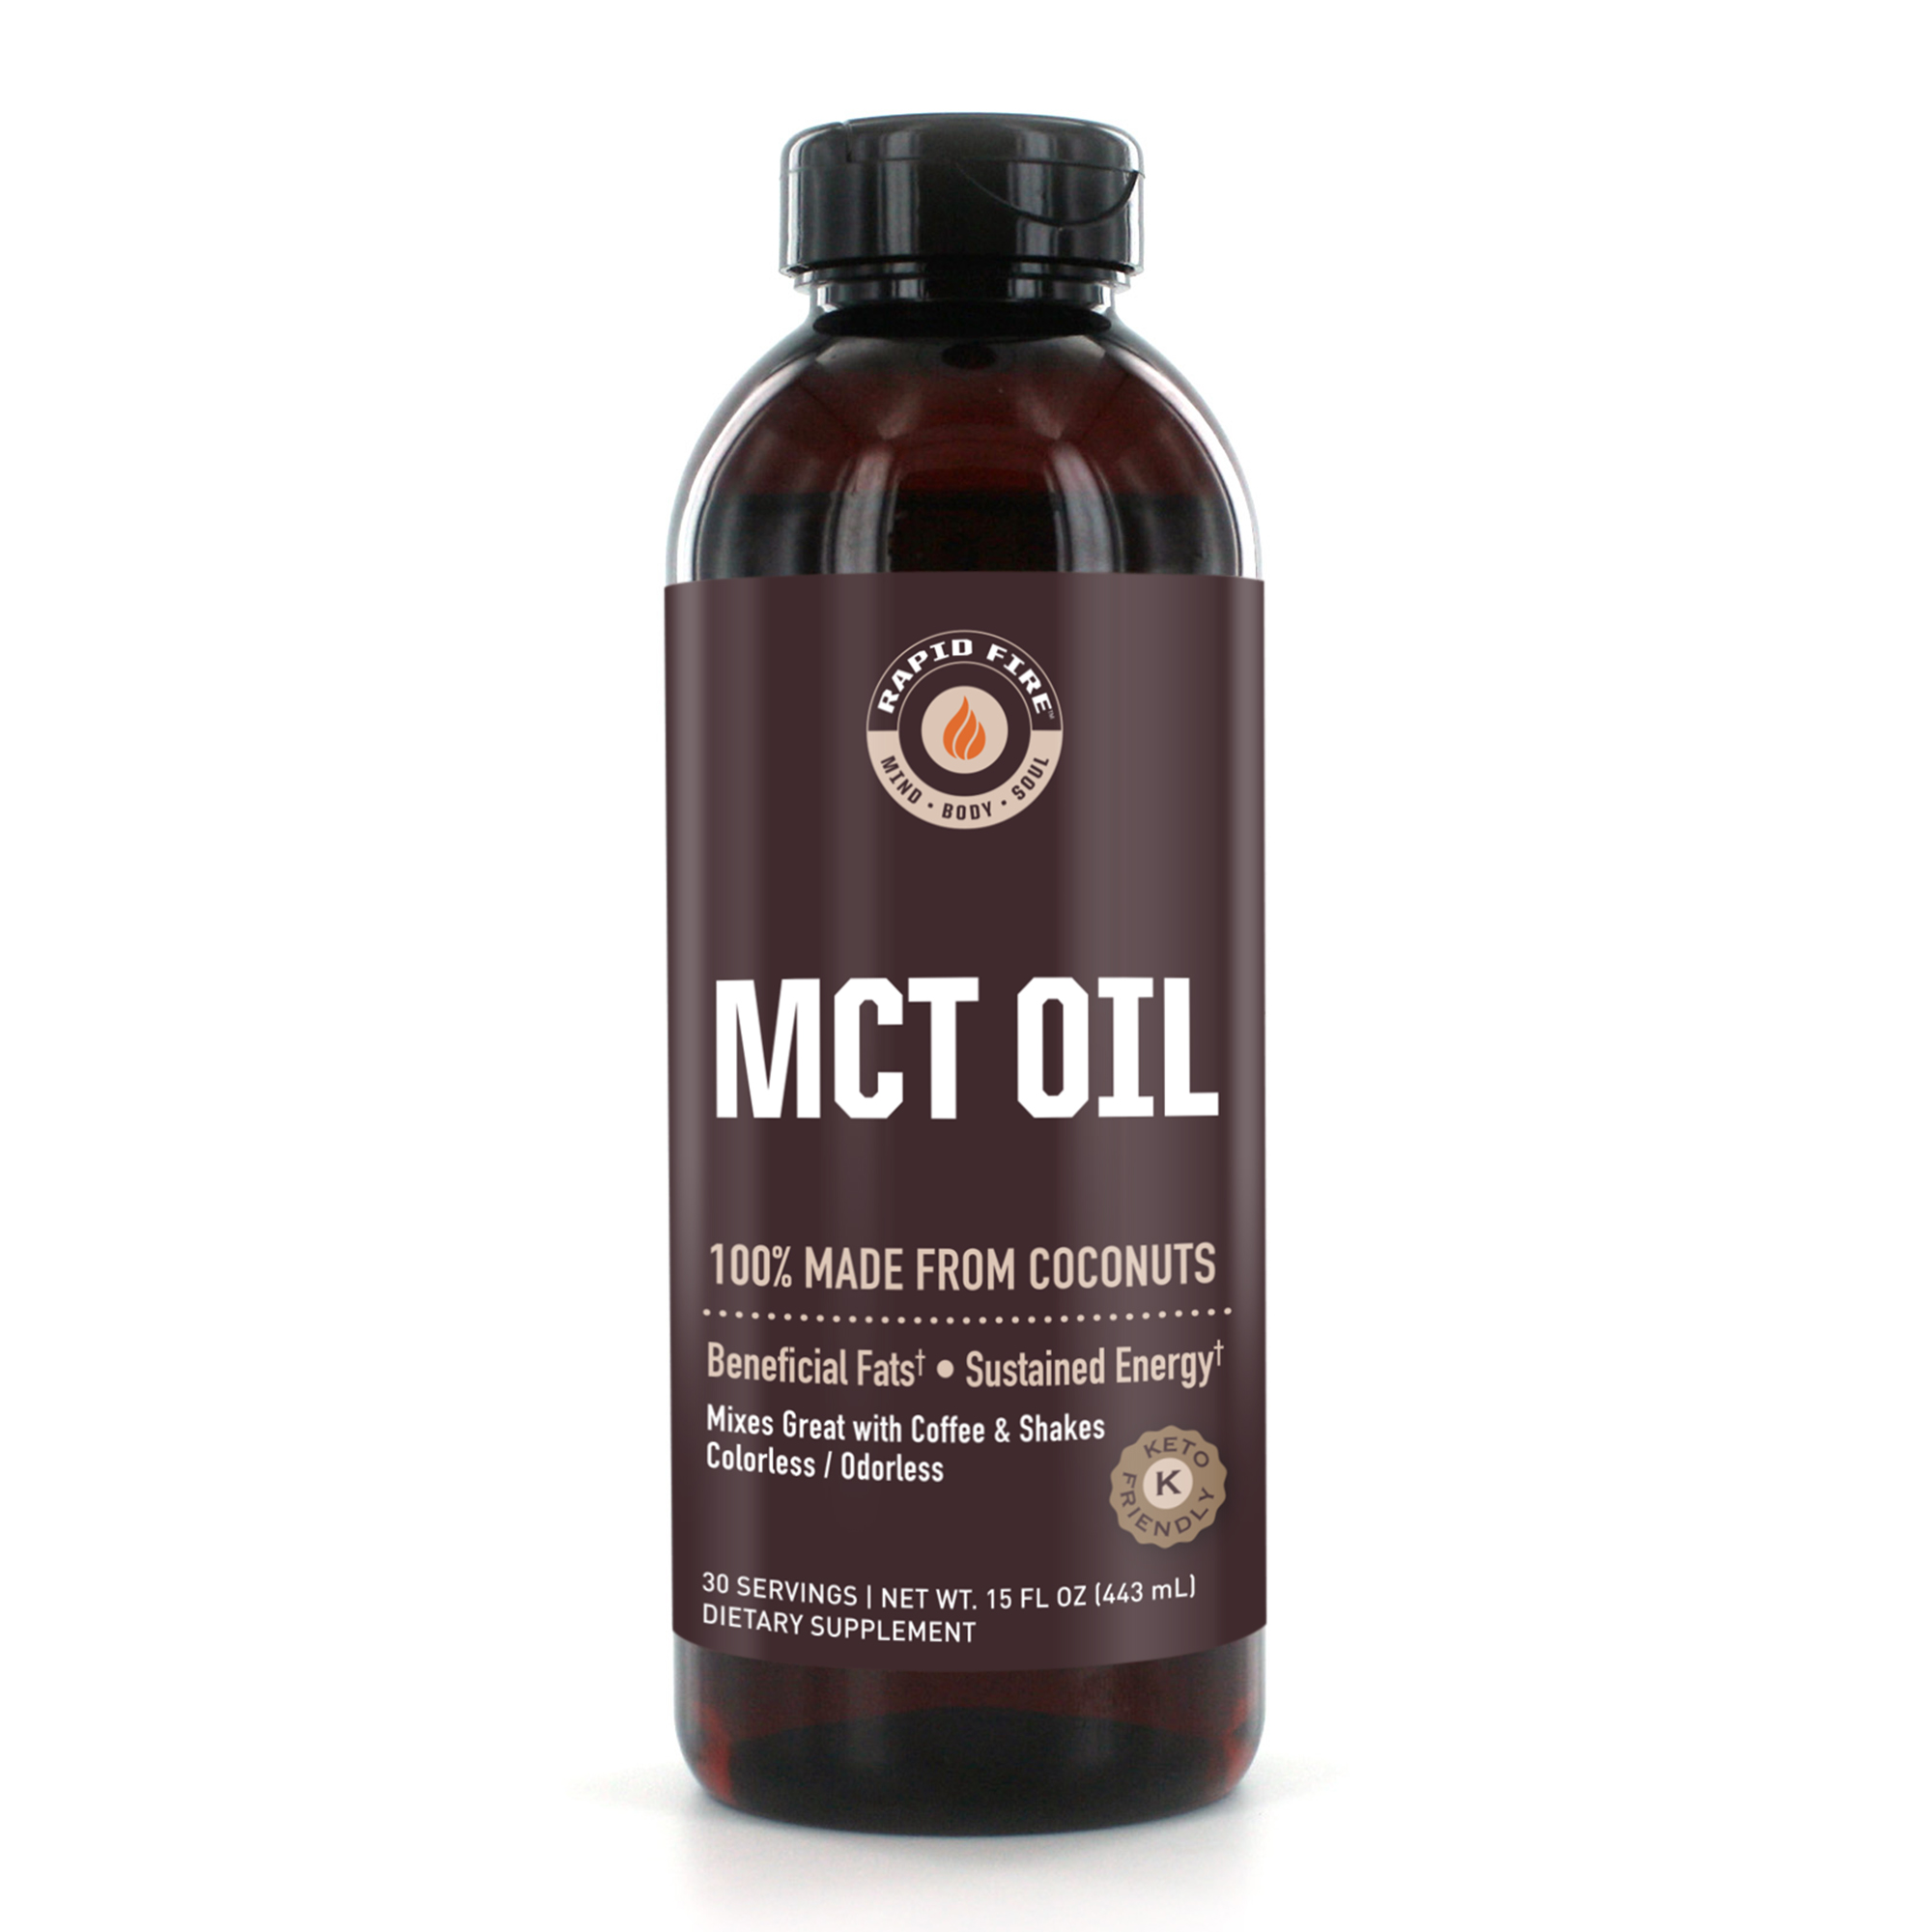 Rapid Fire MCT Oil Dietary Supplement, 16 Fl Oz, 30 Servings